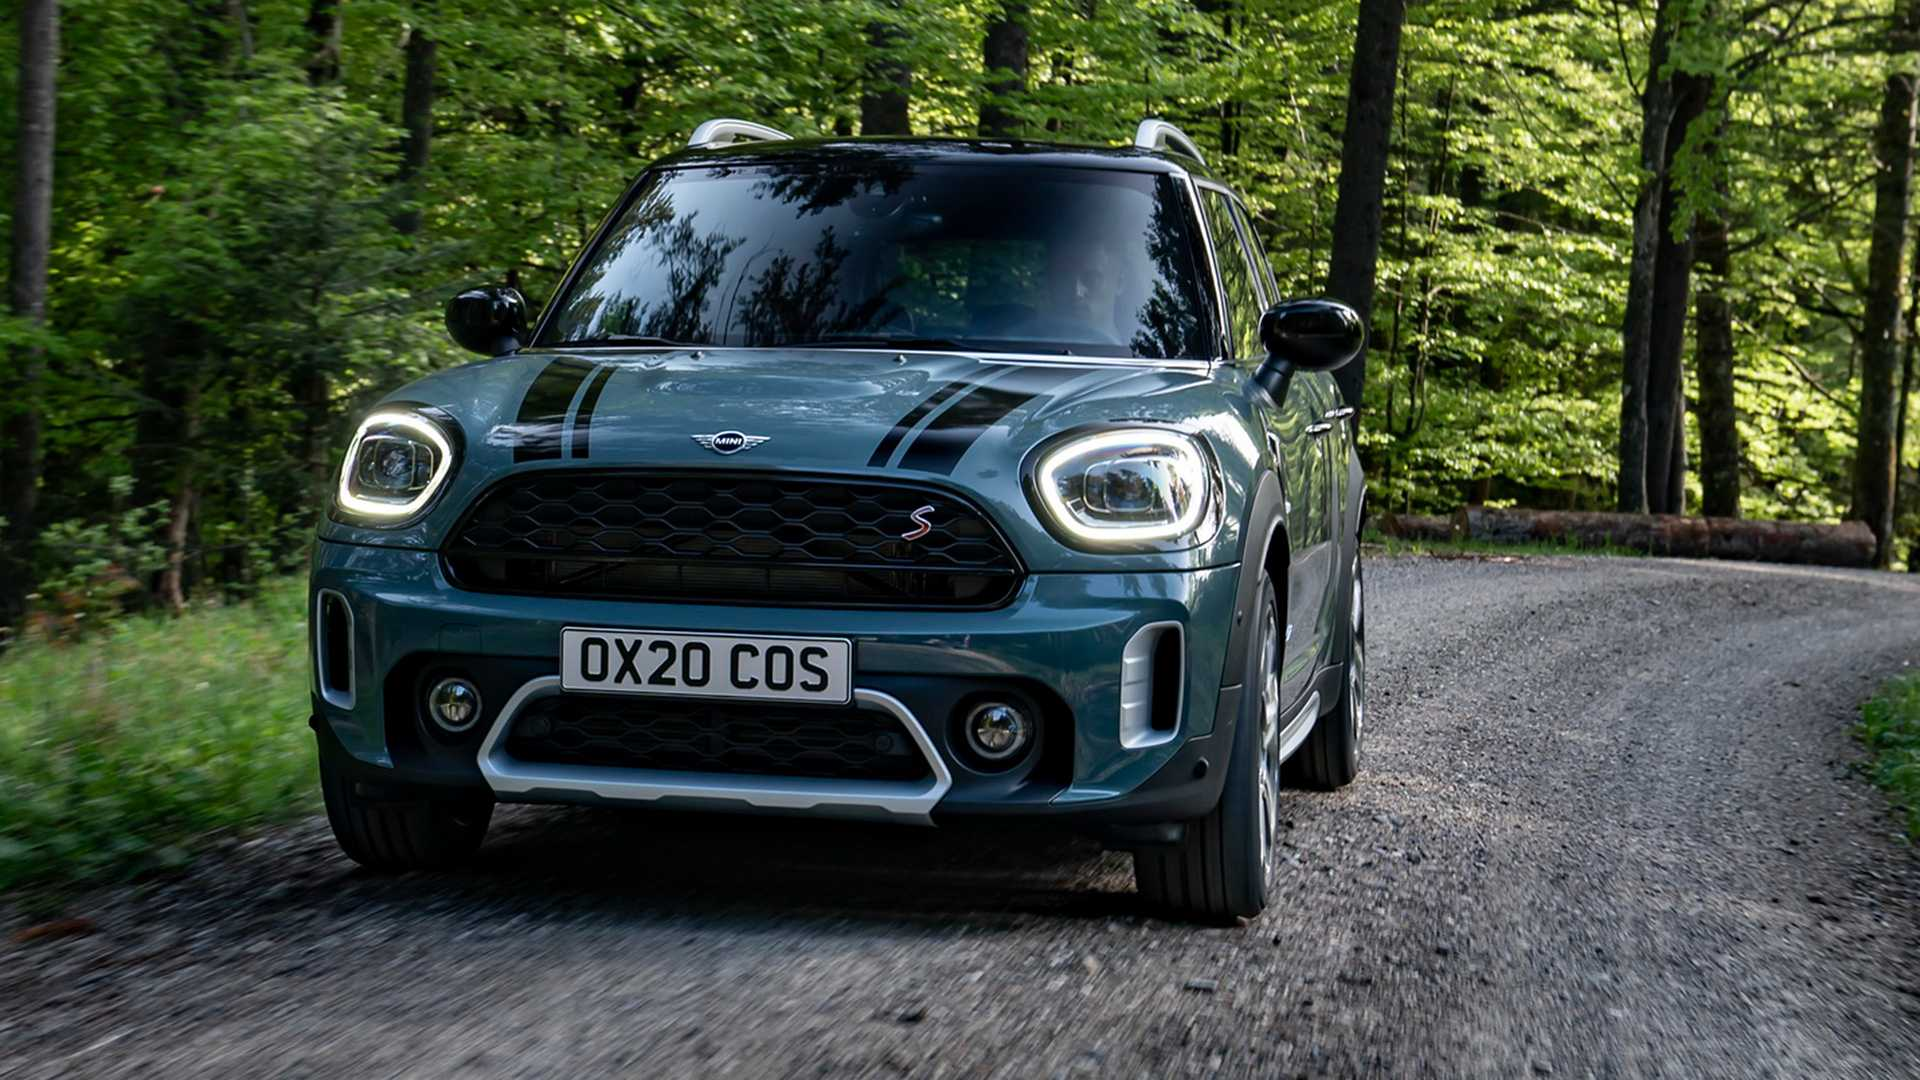 mini-cooper-s-countryman-all4-2020-5